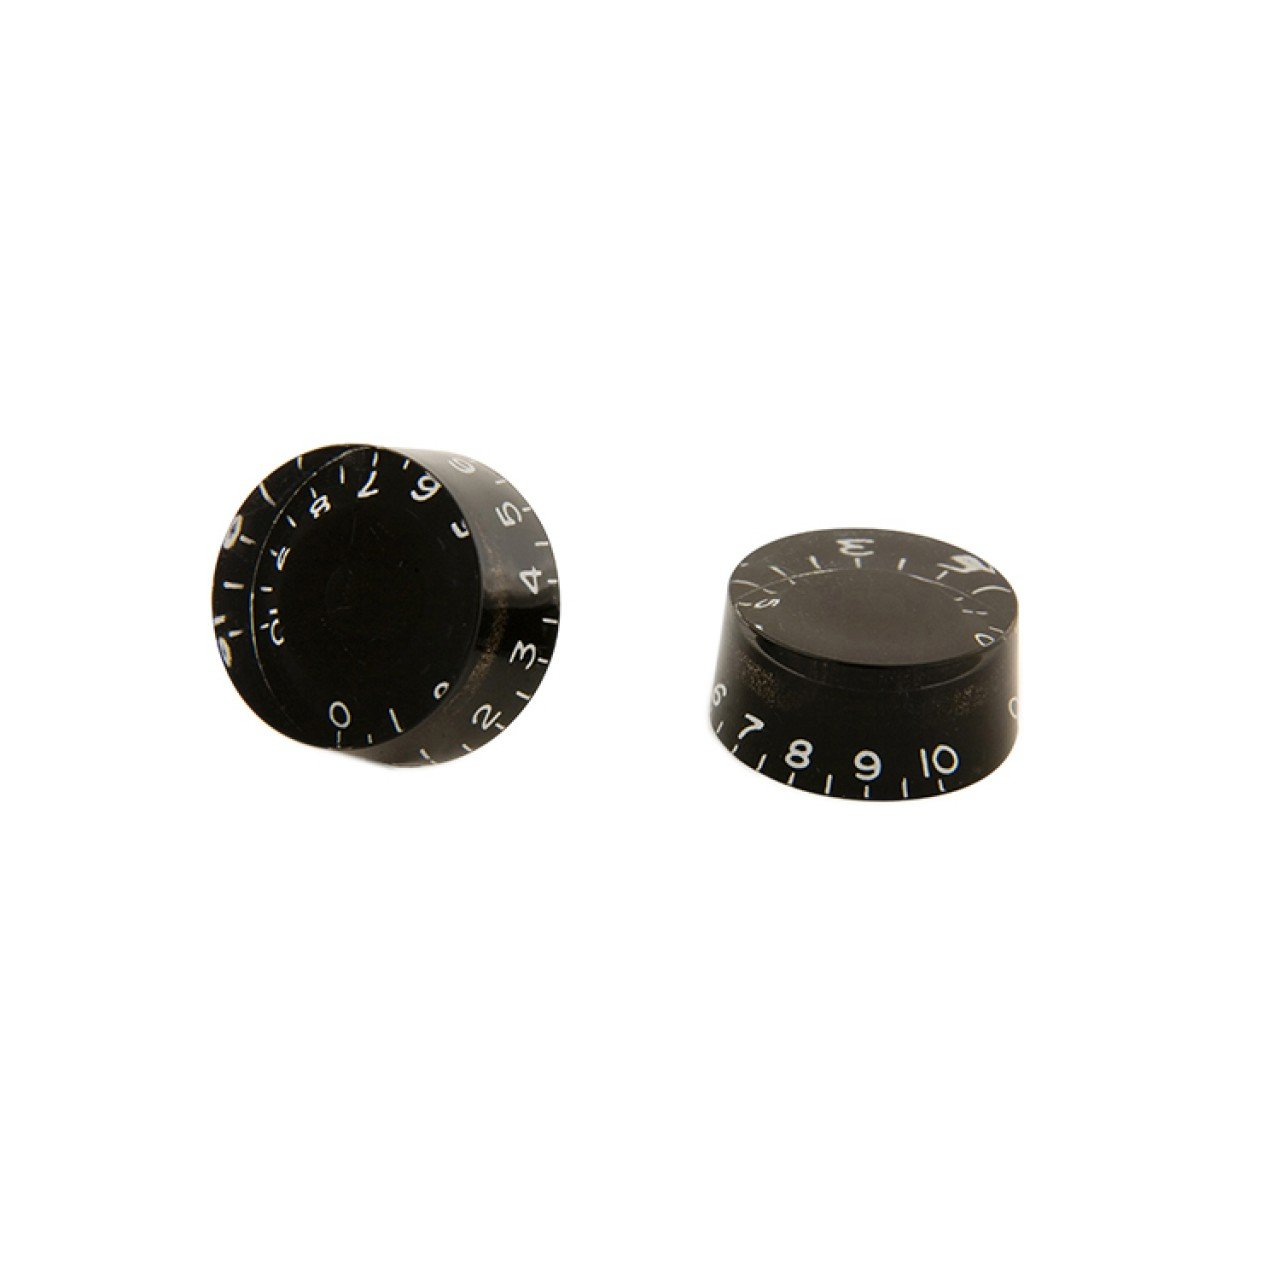 Gibson Gear Speed Knobs (Pack of 4), Black PRSK-010